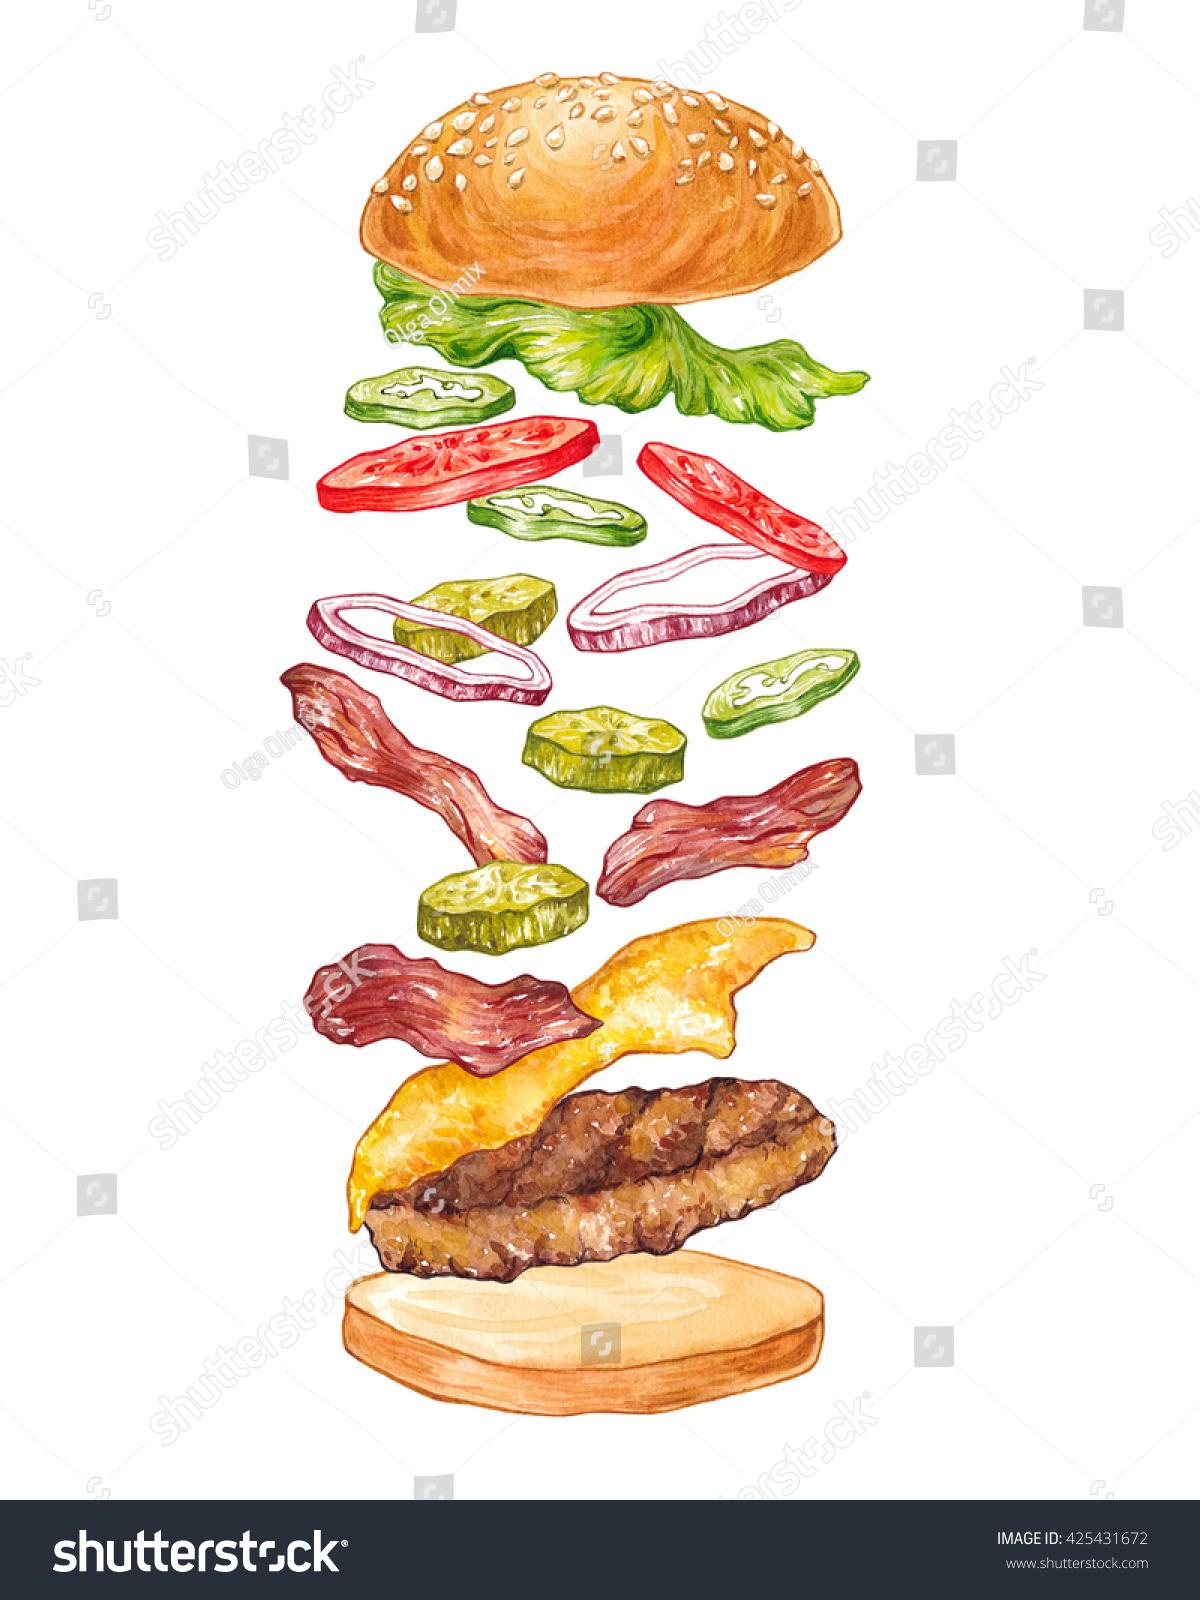 Hand Drawn Watercolor Composition Flying Burger Stock